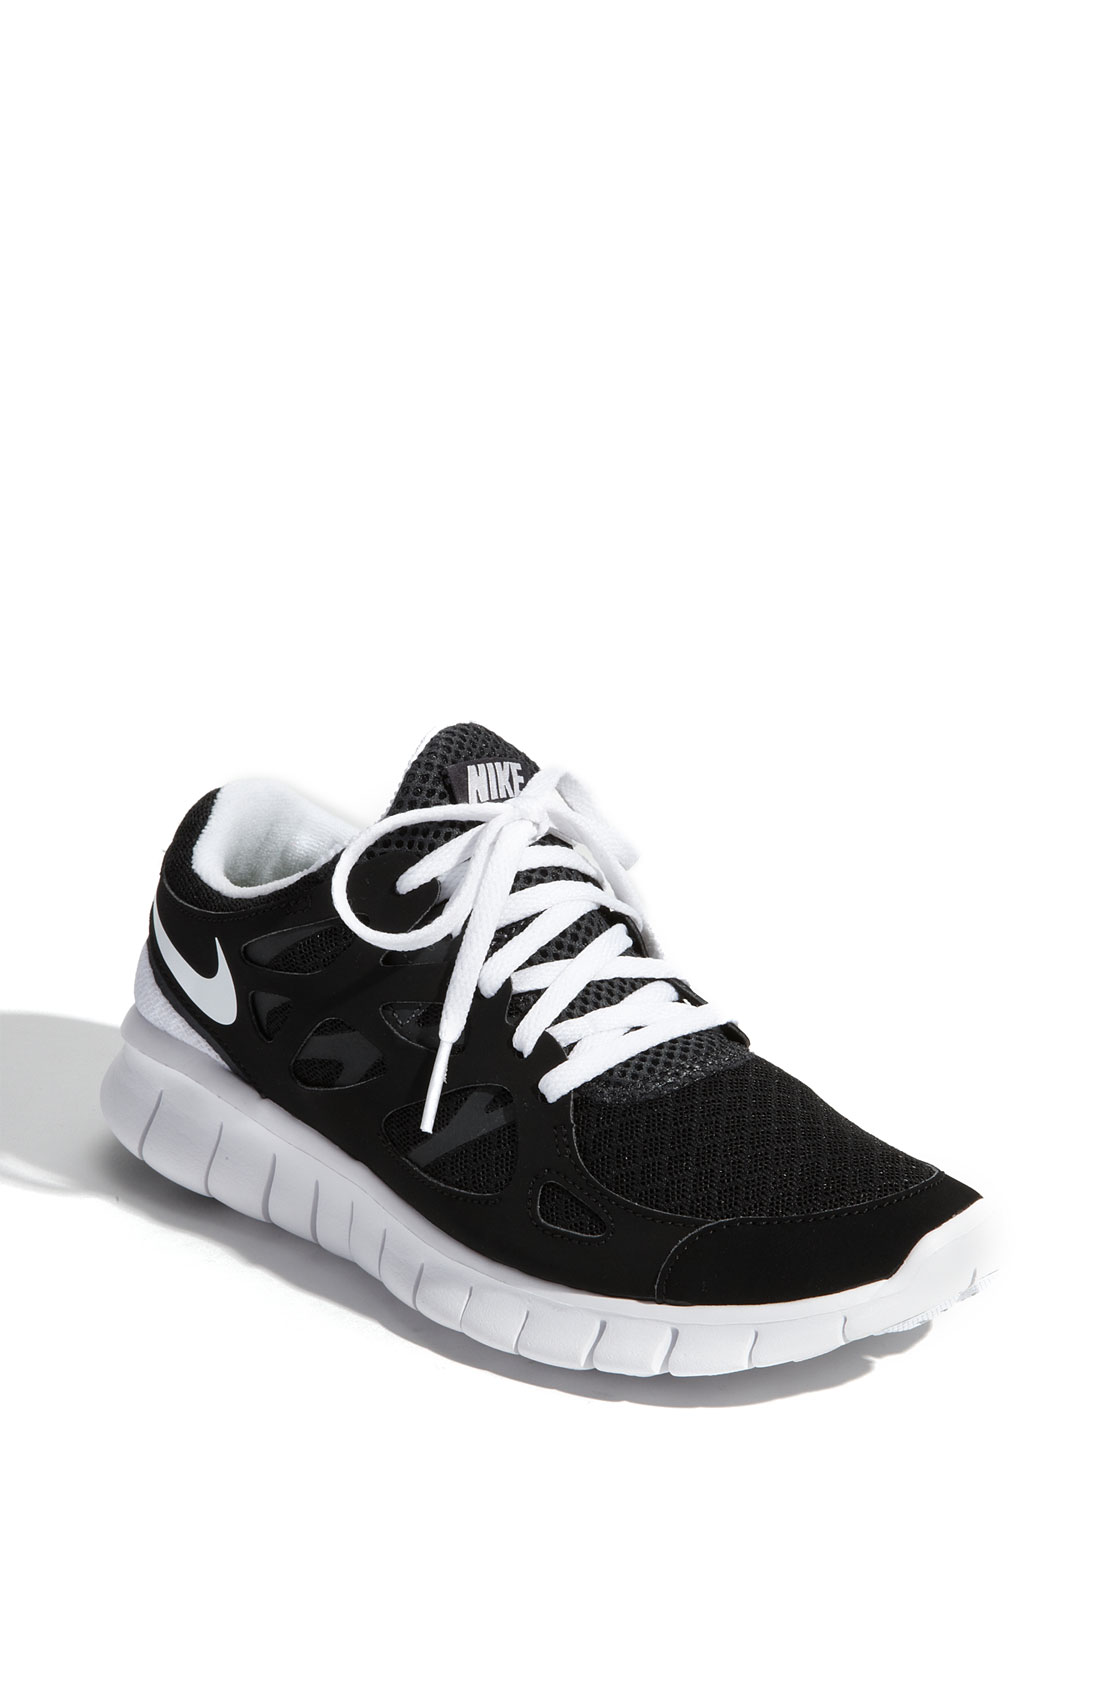 Luxury Nike Womenu0026#39;s Air Max Sequent Running Shoes - White/Black-Pink Blast